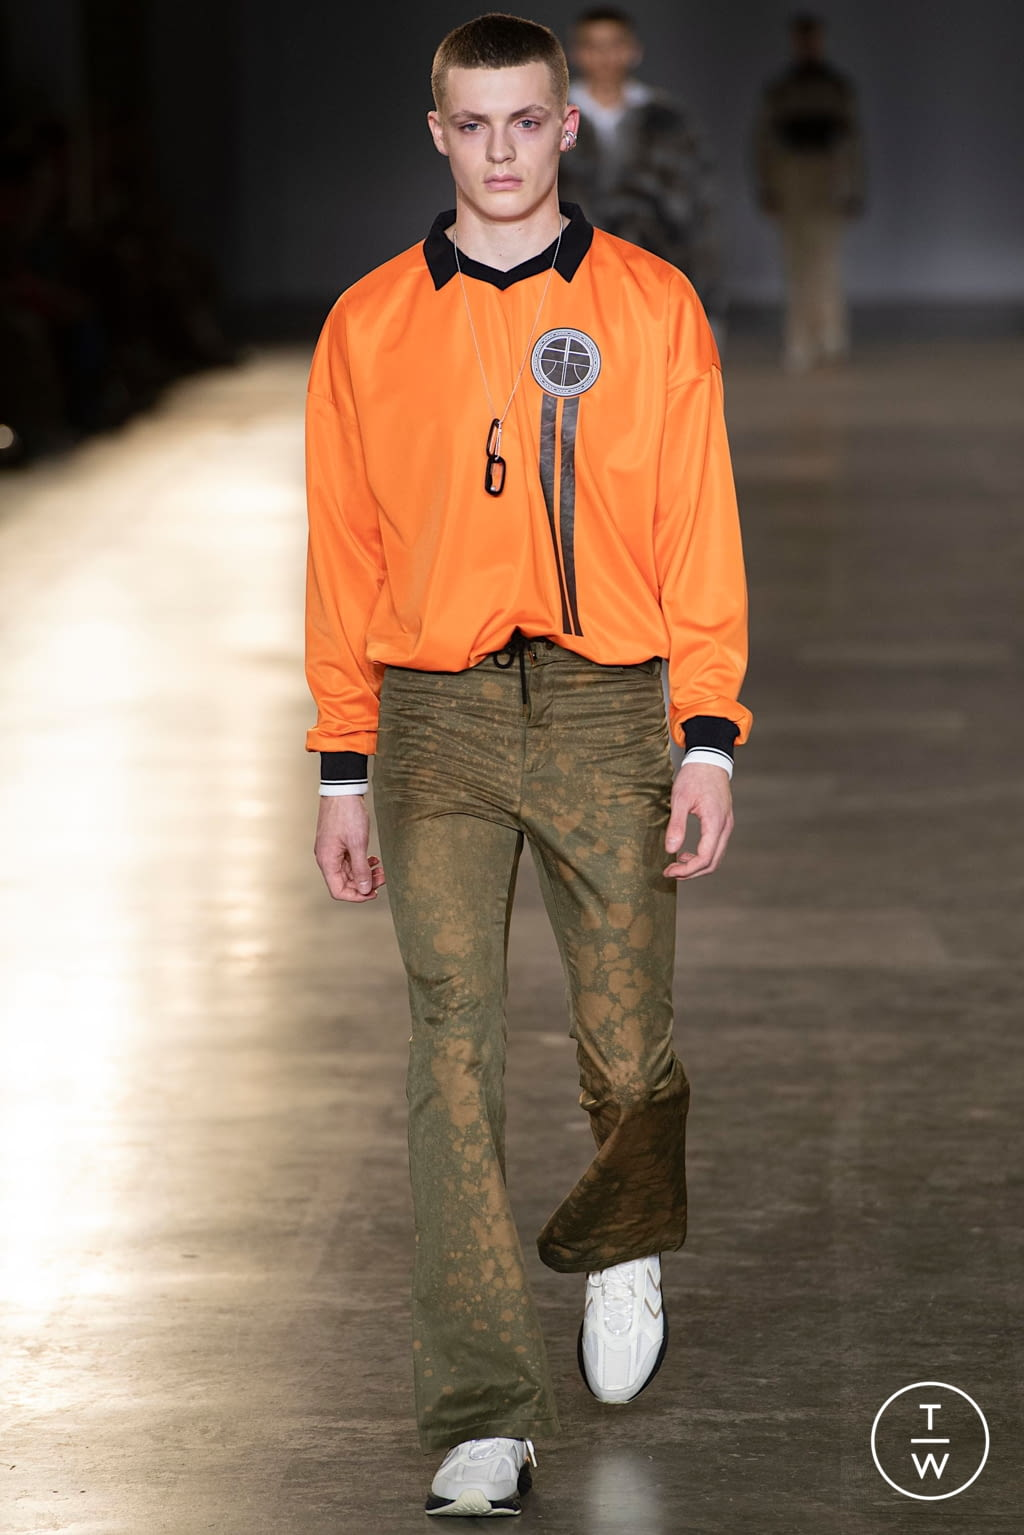 Fashion Week London Fall/Winter 2020 look 9 from the Astrid Andersen collection 男装